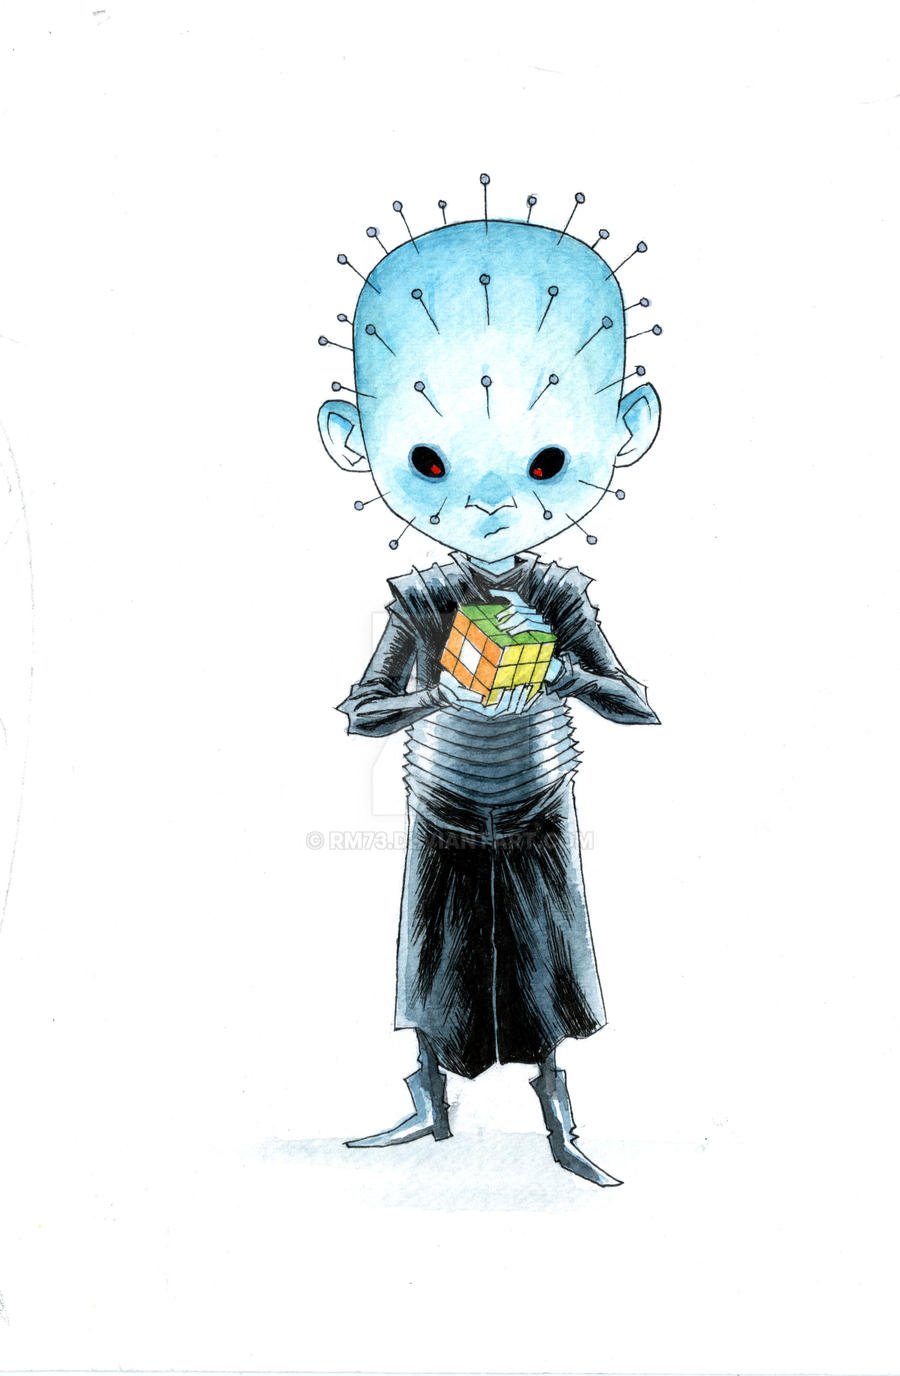 LITTLE PIN HEAD by RM73